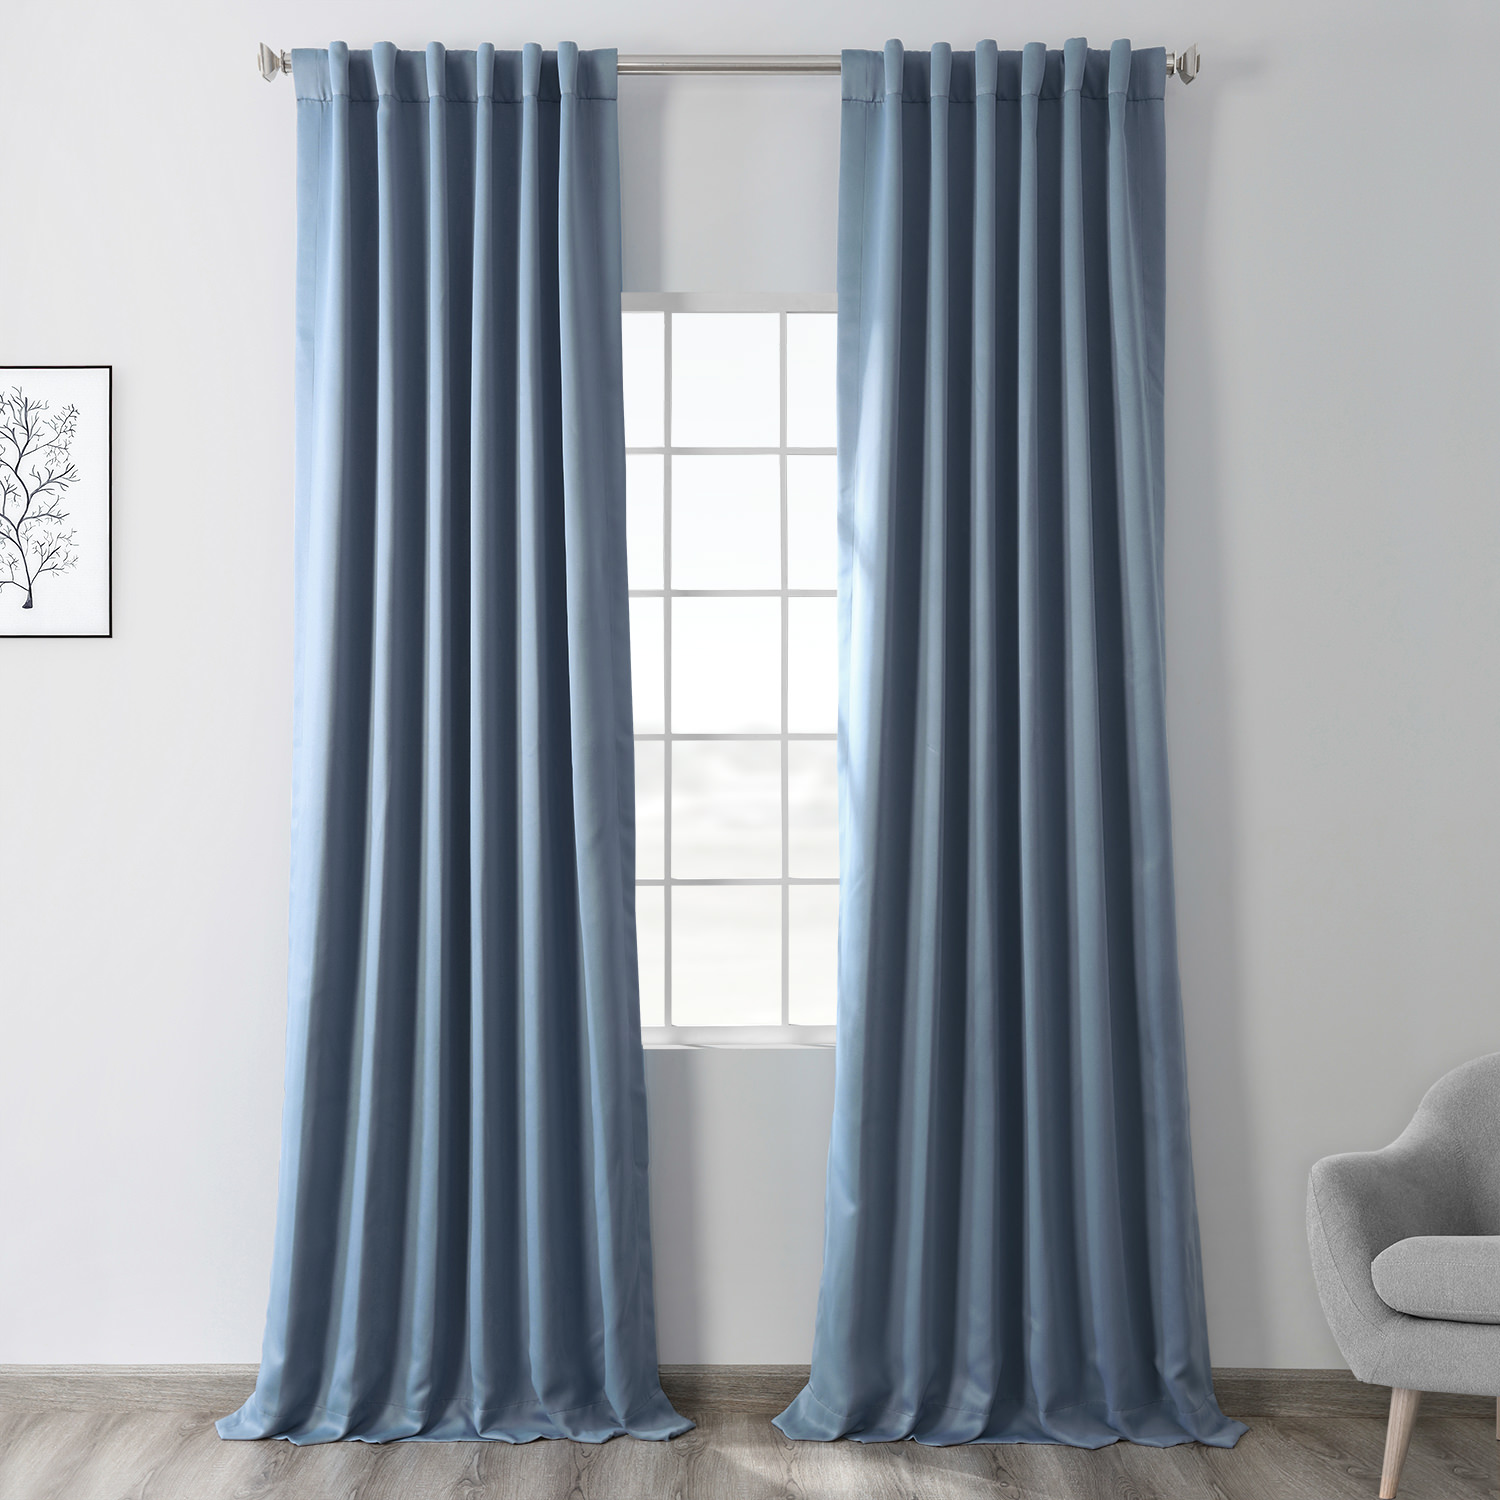 Poseidon Blue Blackout Curtain